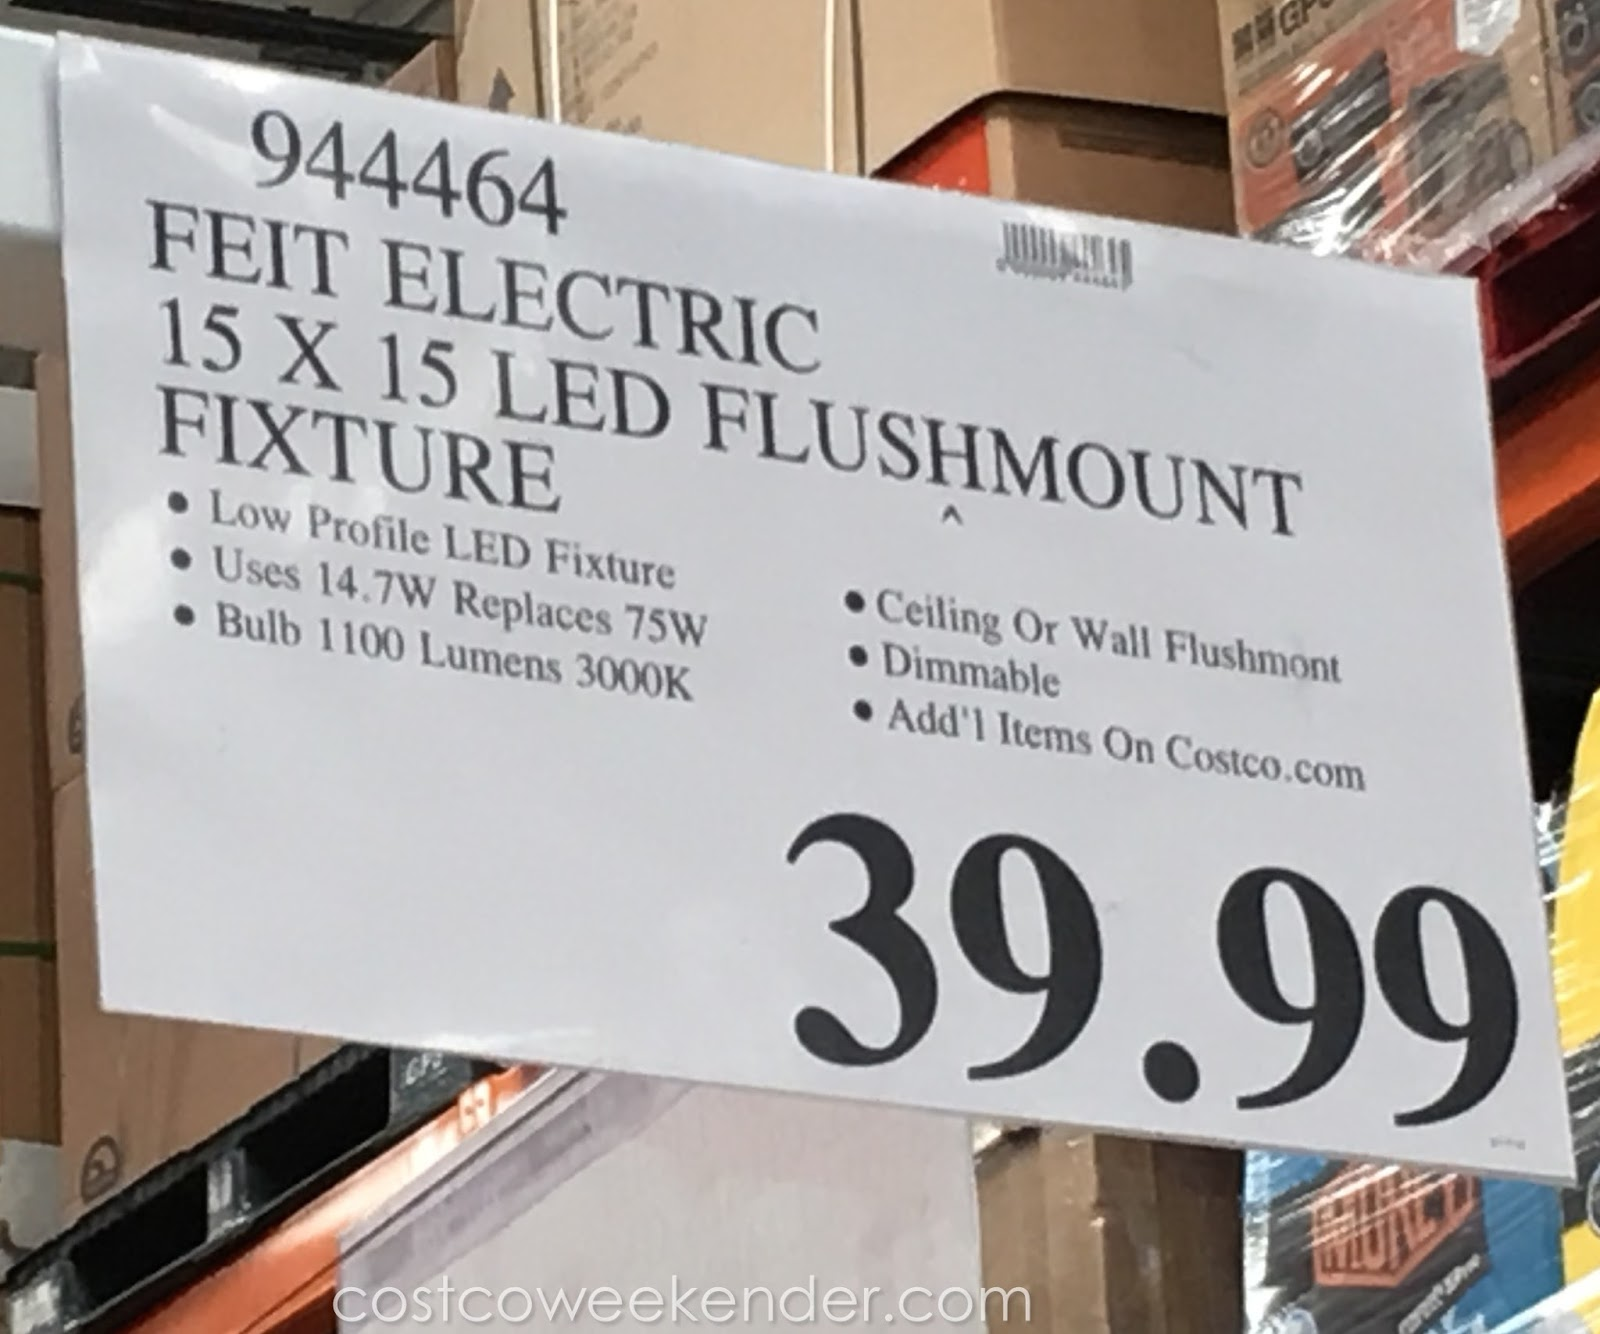 Deal For The Feit Led Flat Panel Light Fixture At Costco